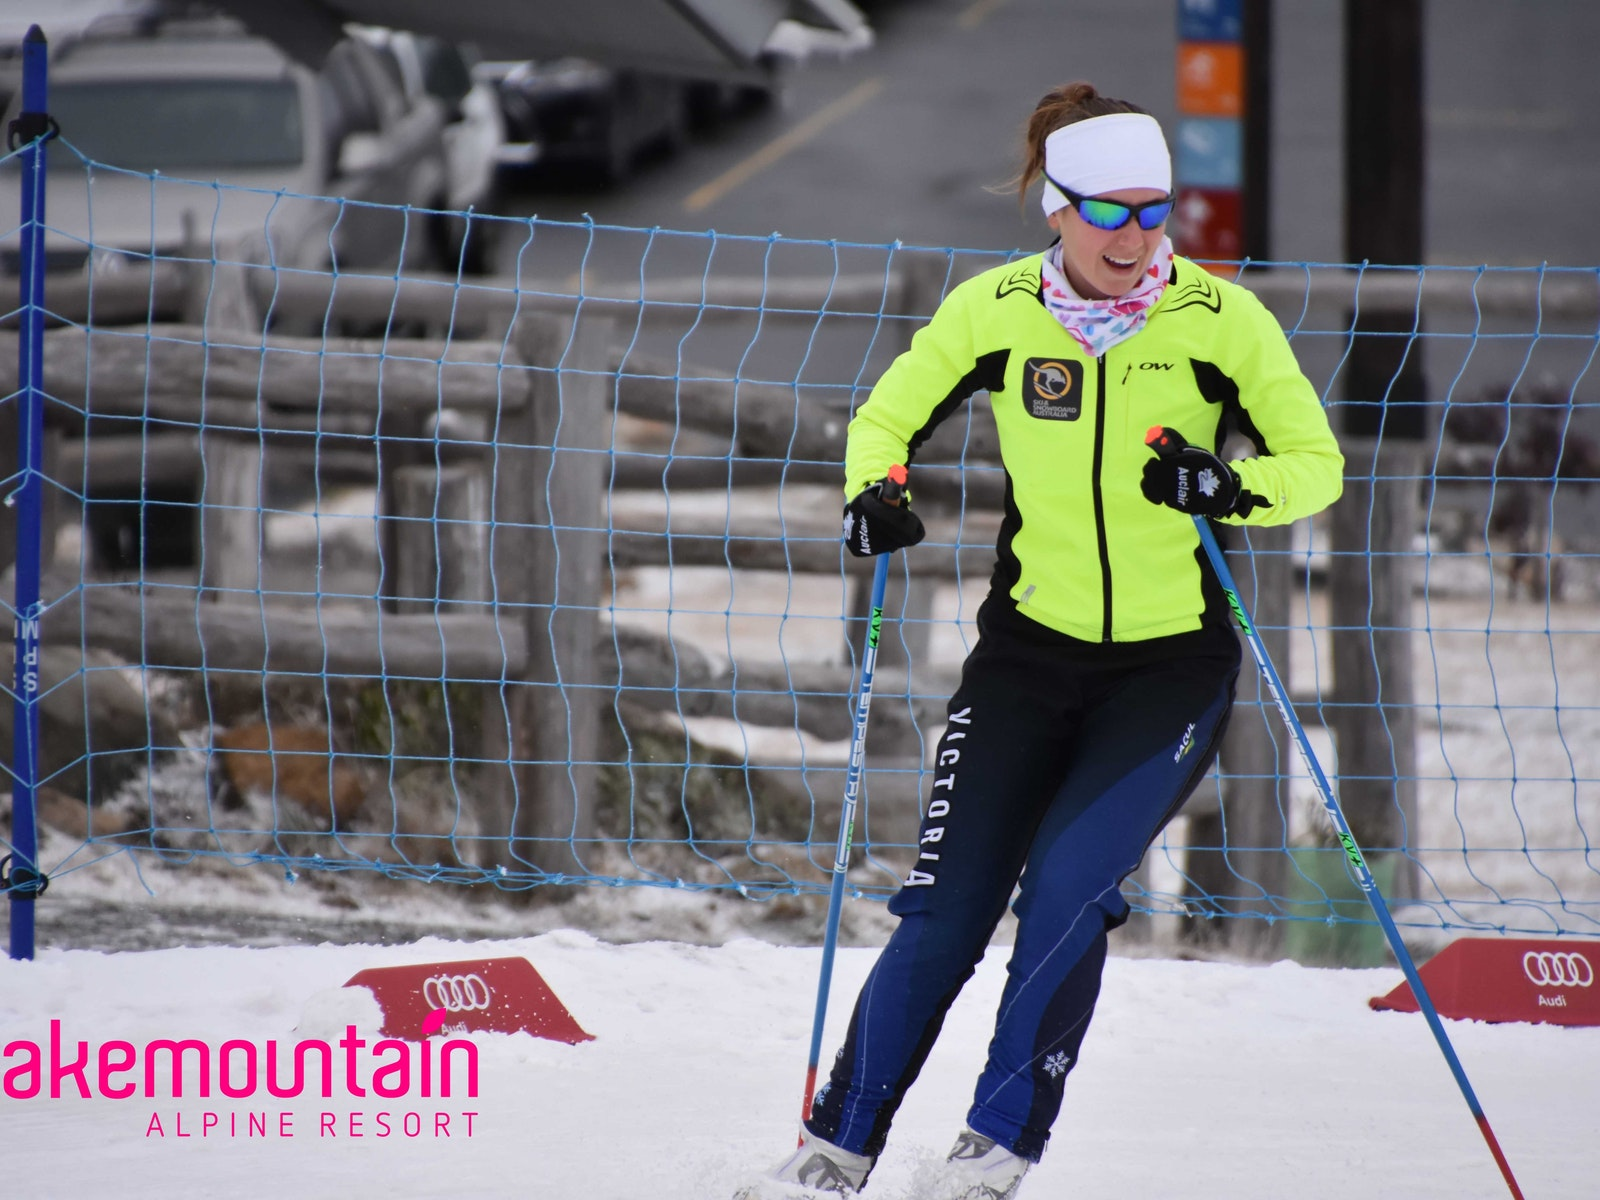 Ladies-On-Skis is a low-pace active lifestyle event